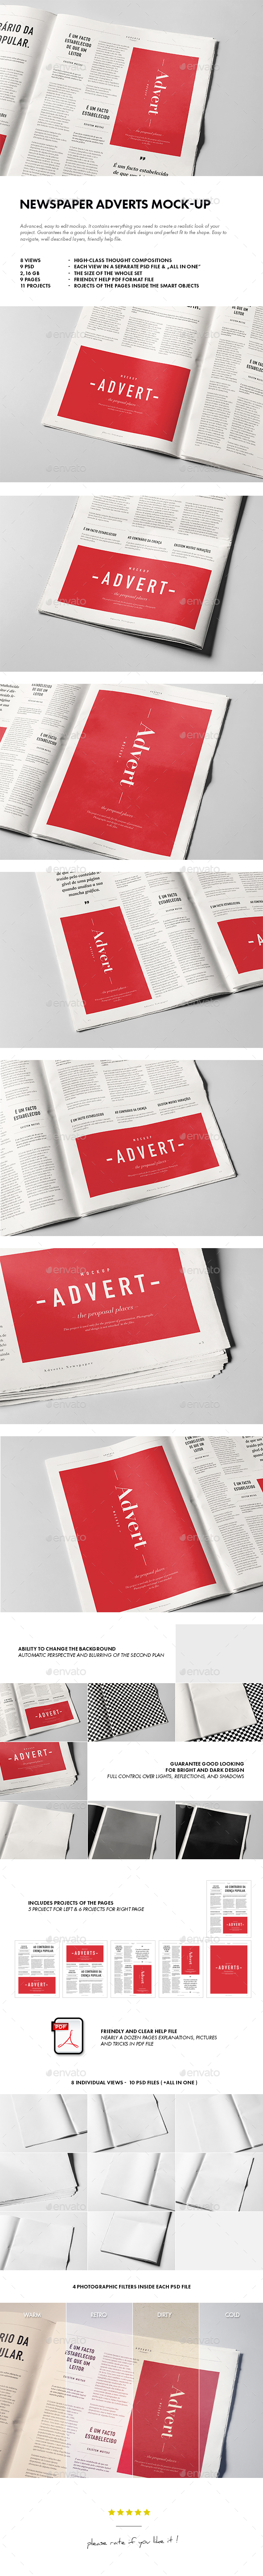 Newspaper Adverts Mock-up - Miscellaneous Print